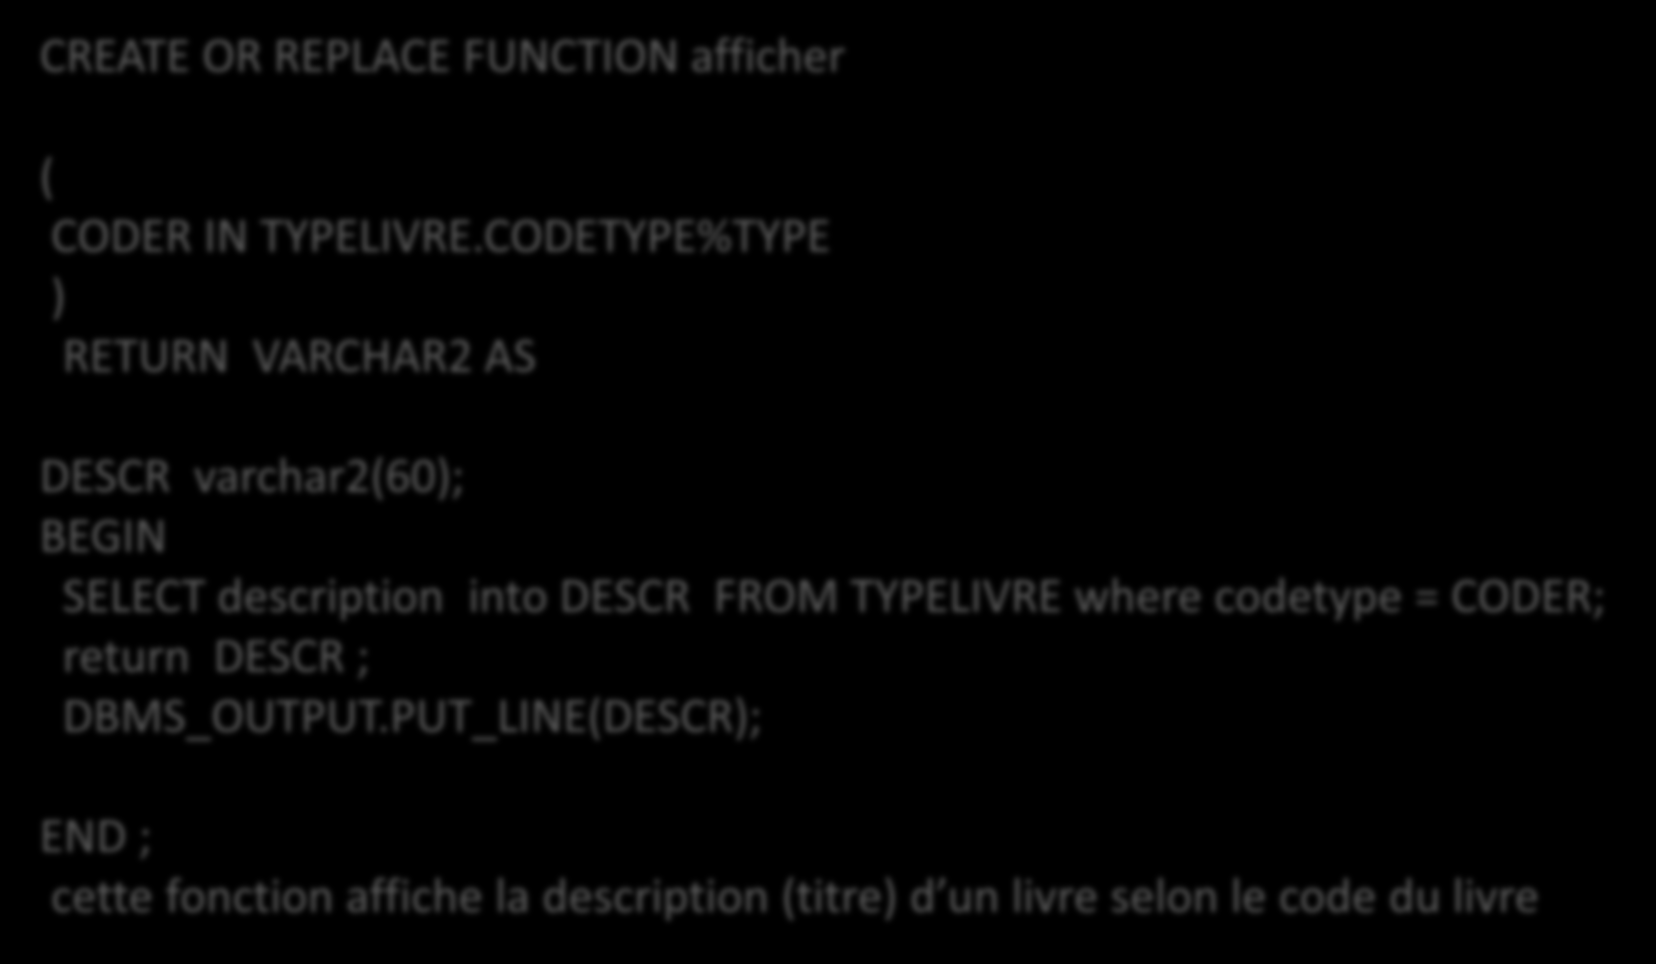 Exemple1 CREATE OR REPLACE FUNCTION afficher ( CODER IN TYPELIVRE.